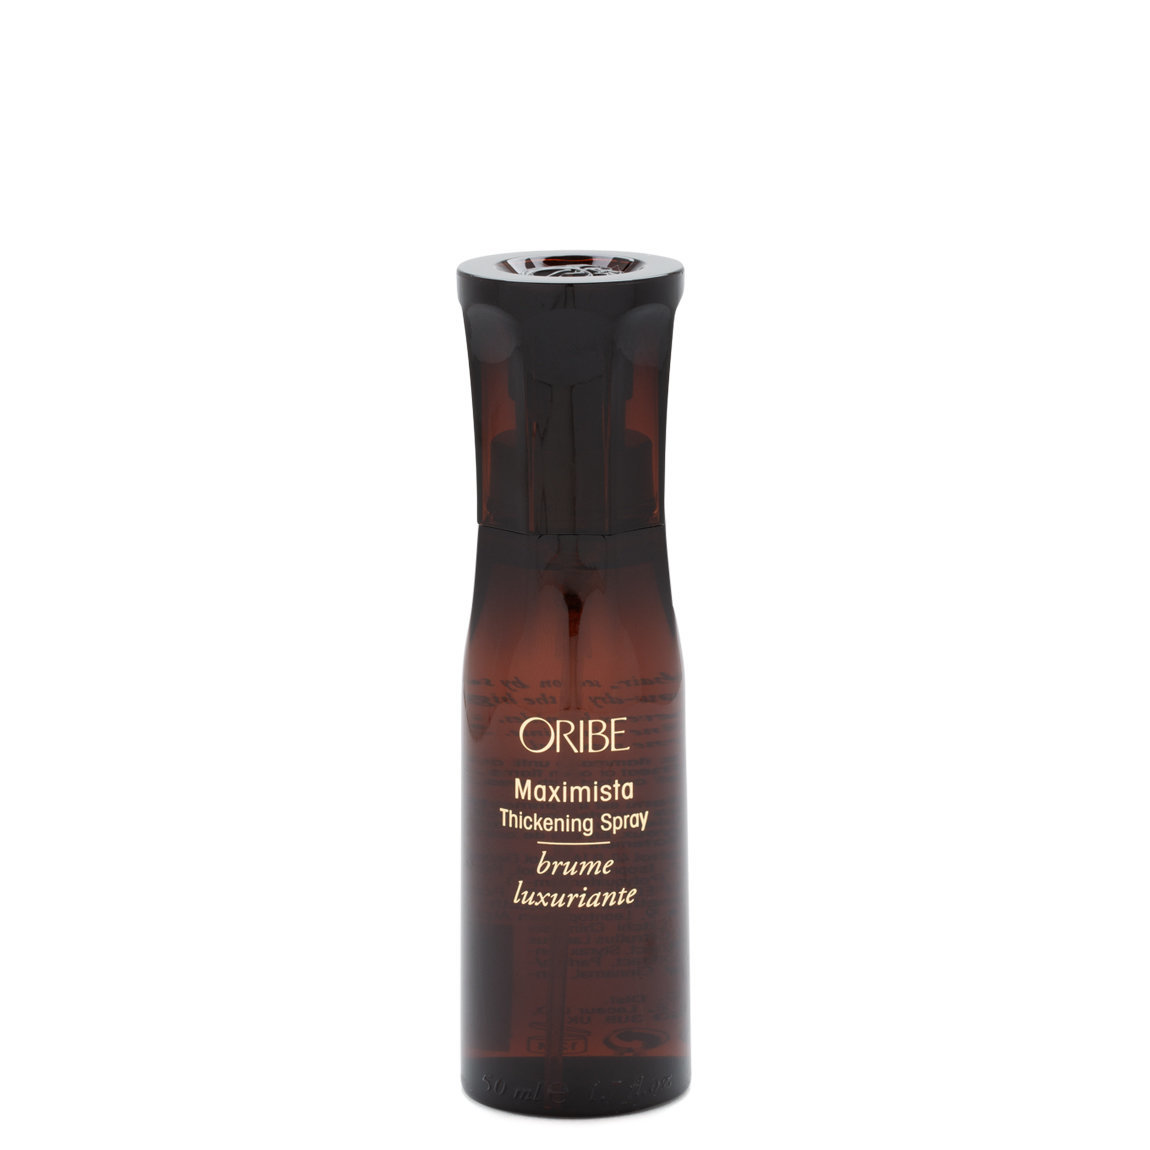 Oribe Maximista Thickening Spray 1.7 oz product smear.